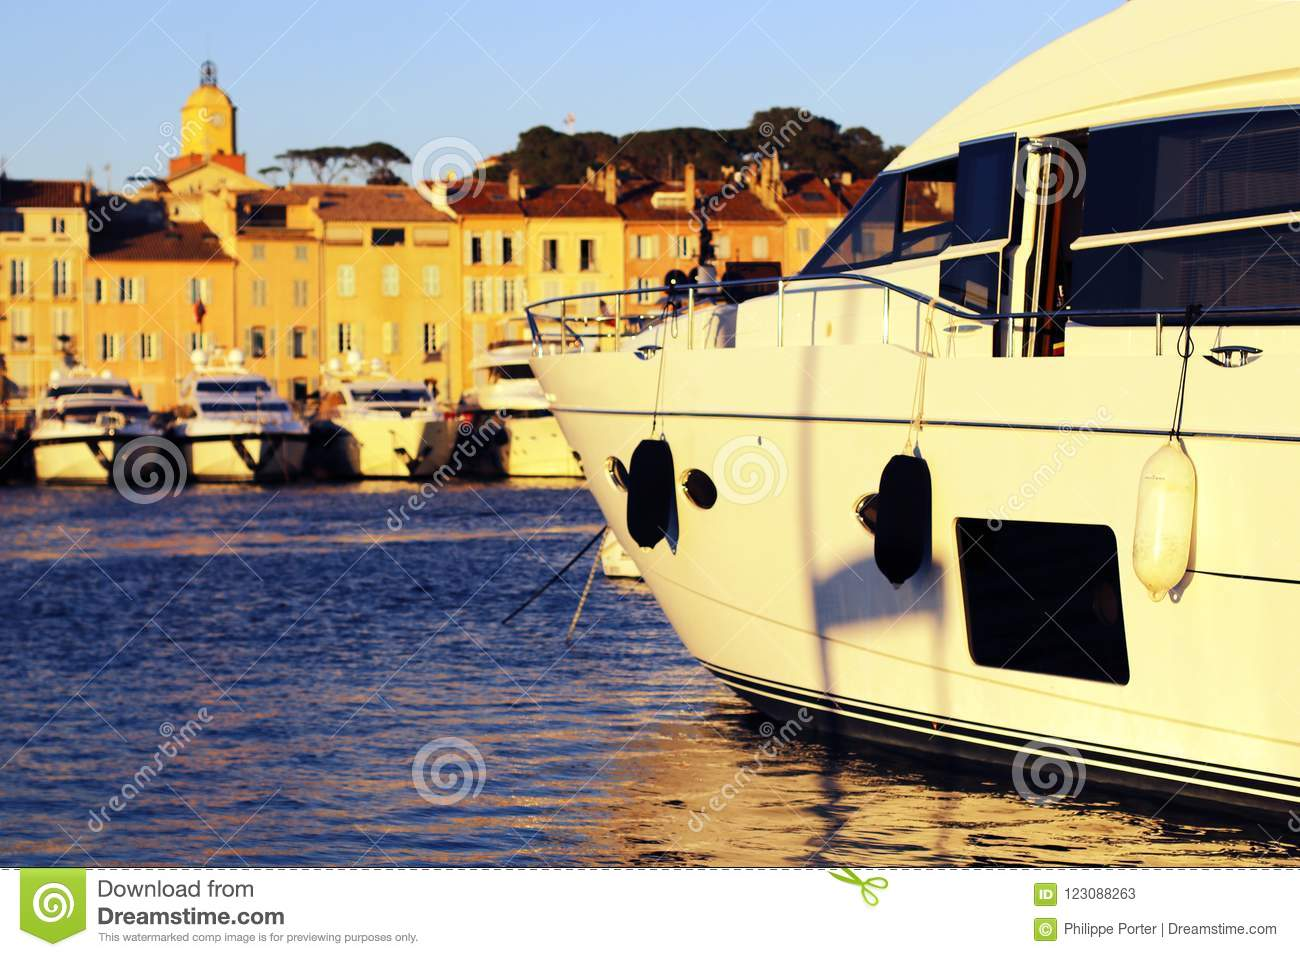 Luxury yachts at sunset in the ancient port of Saint-Tropez